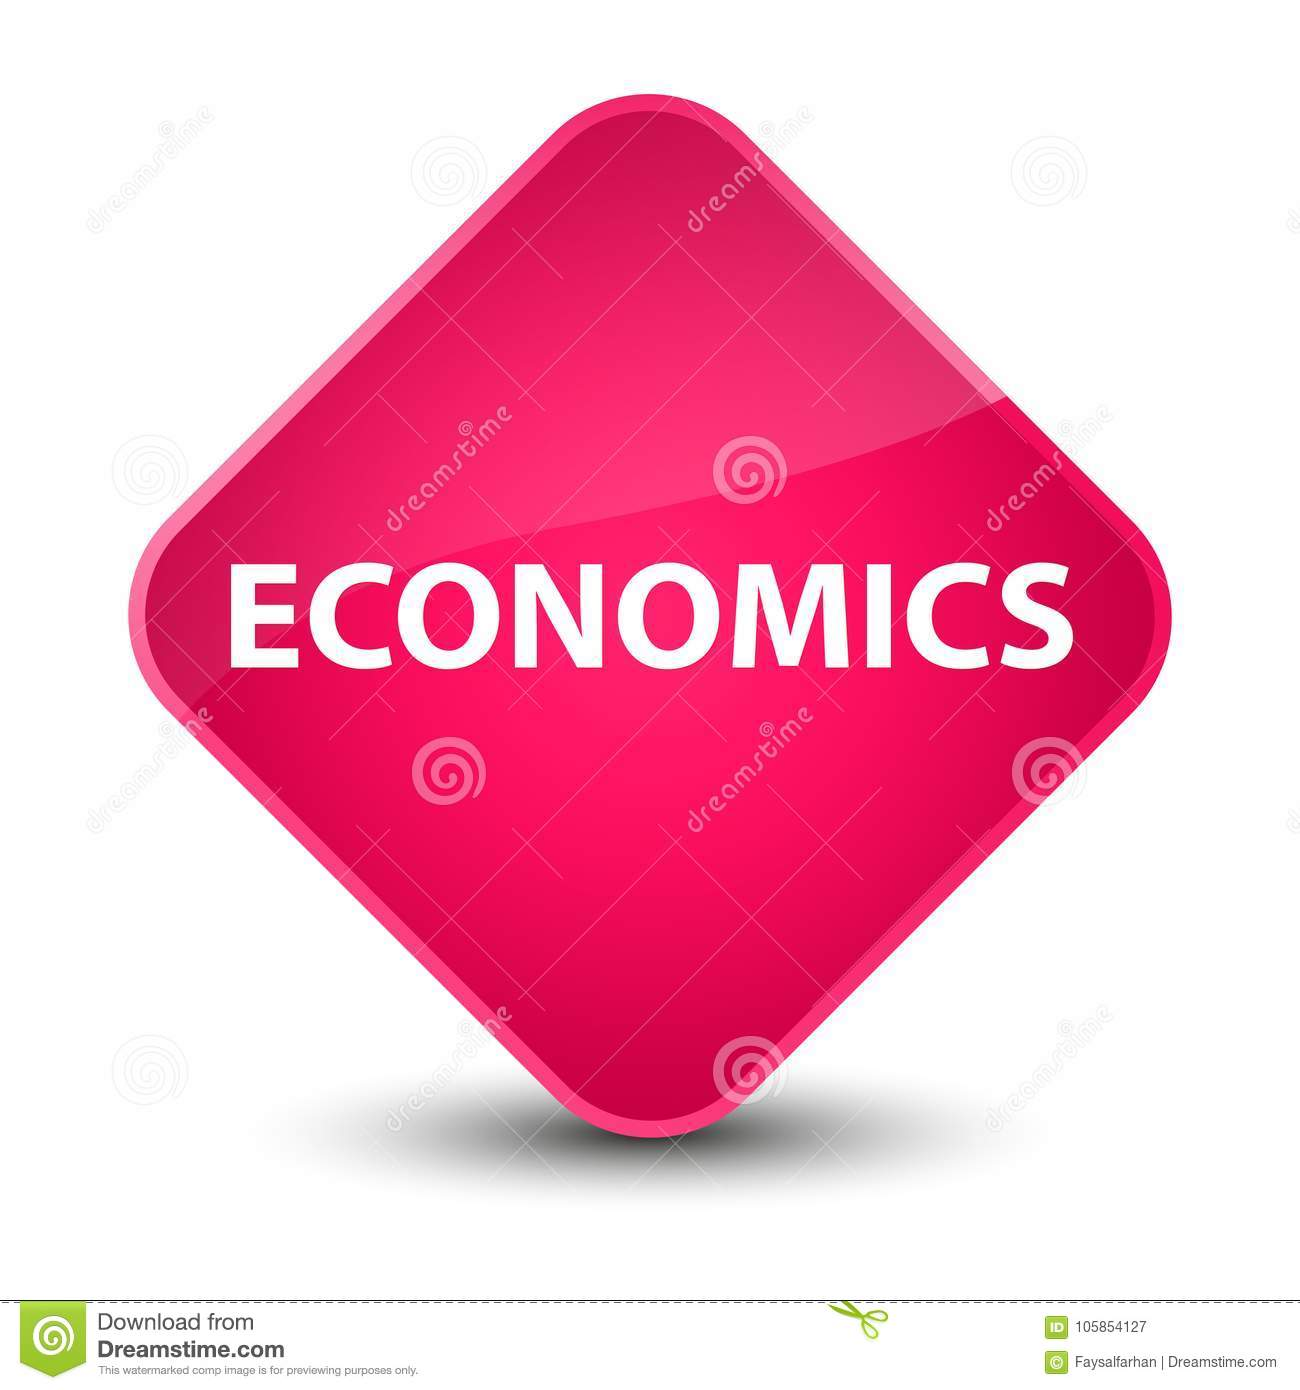 f8b7670c0e22 Economics Elegant Pink Diamond Button Stock Illustration ...